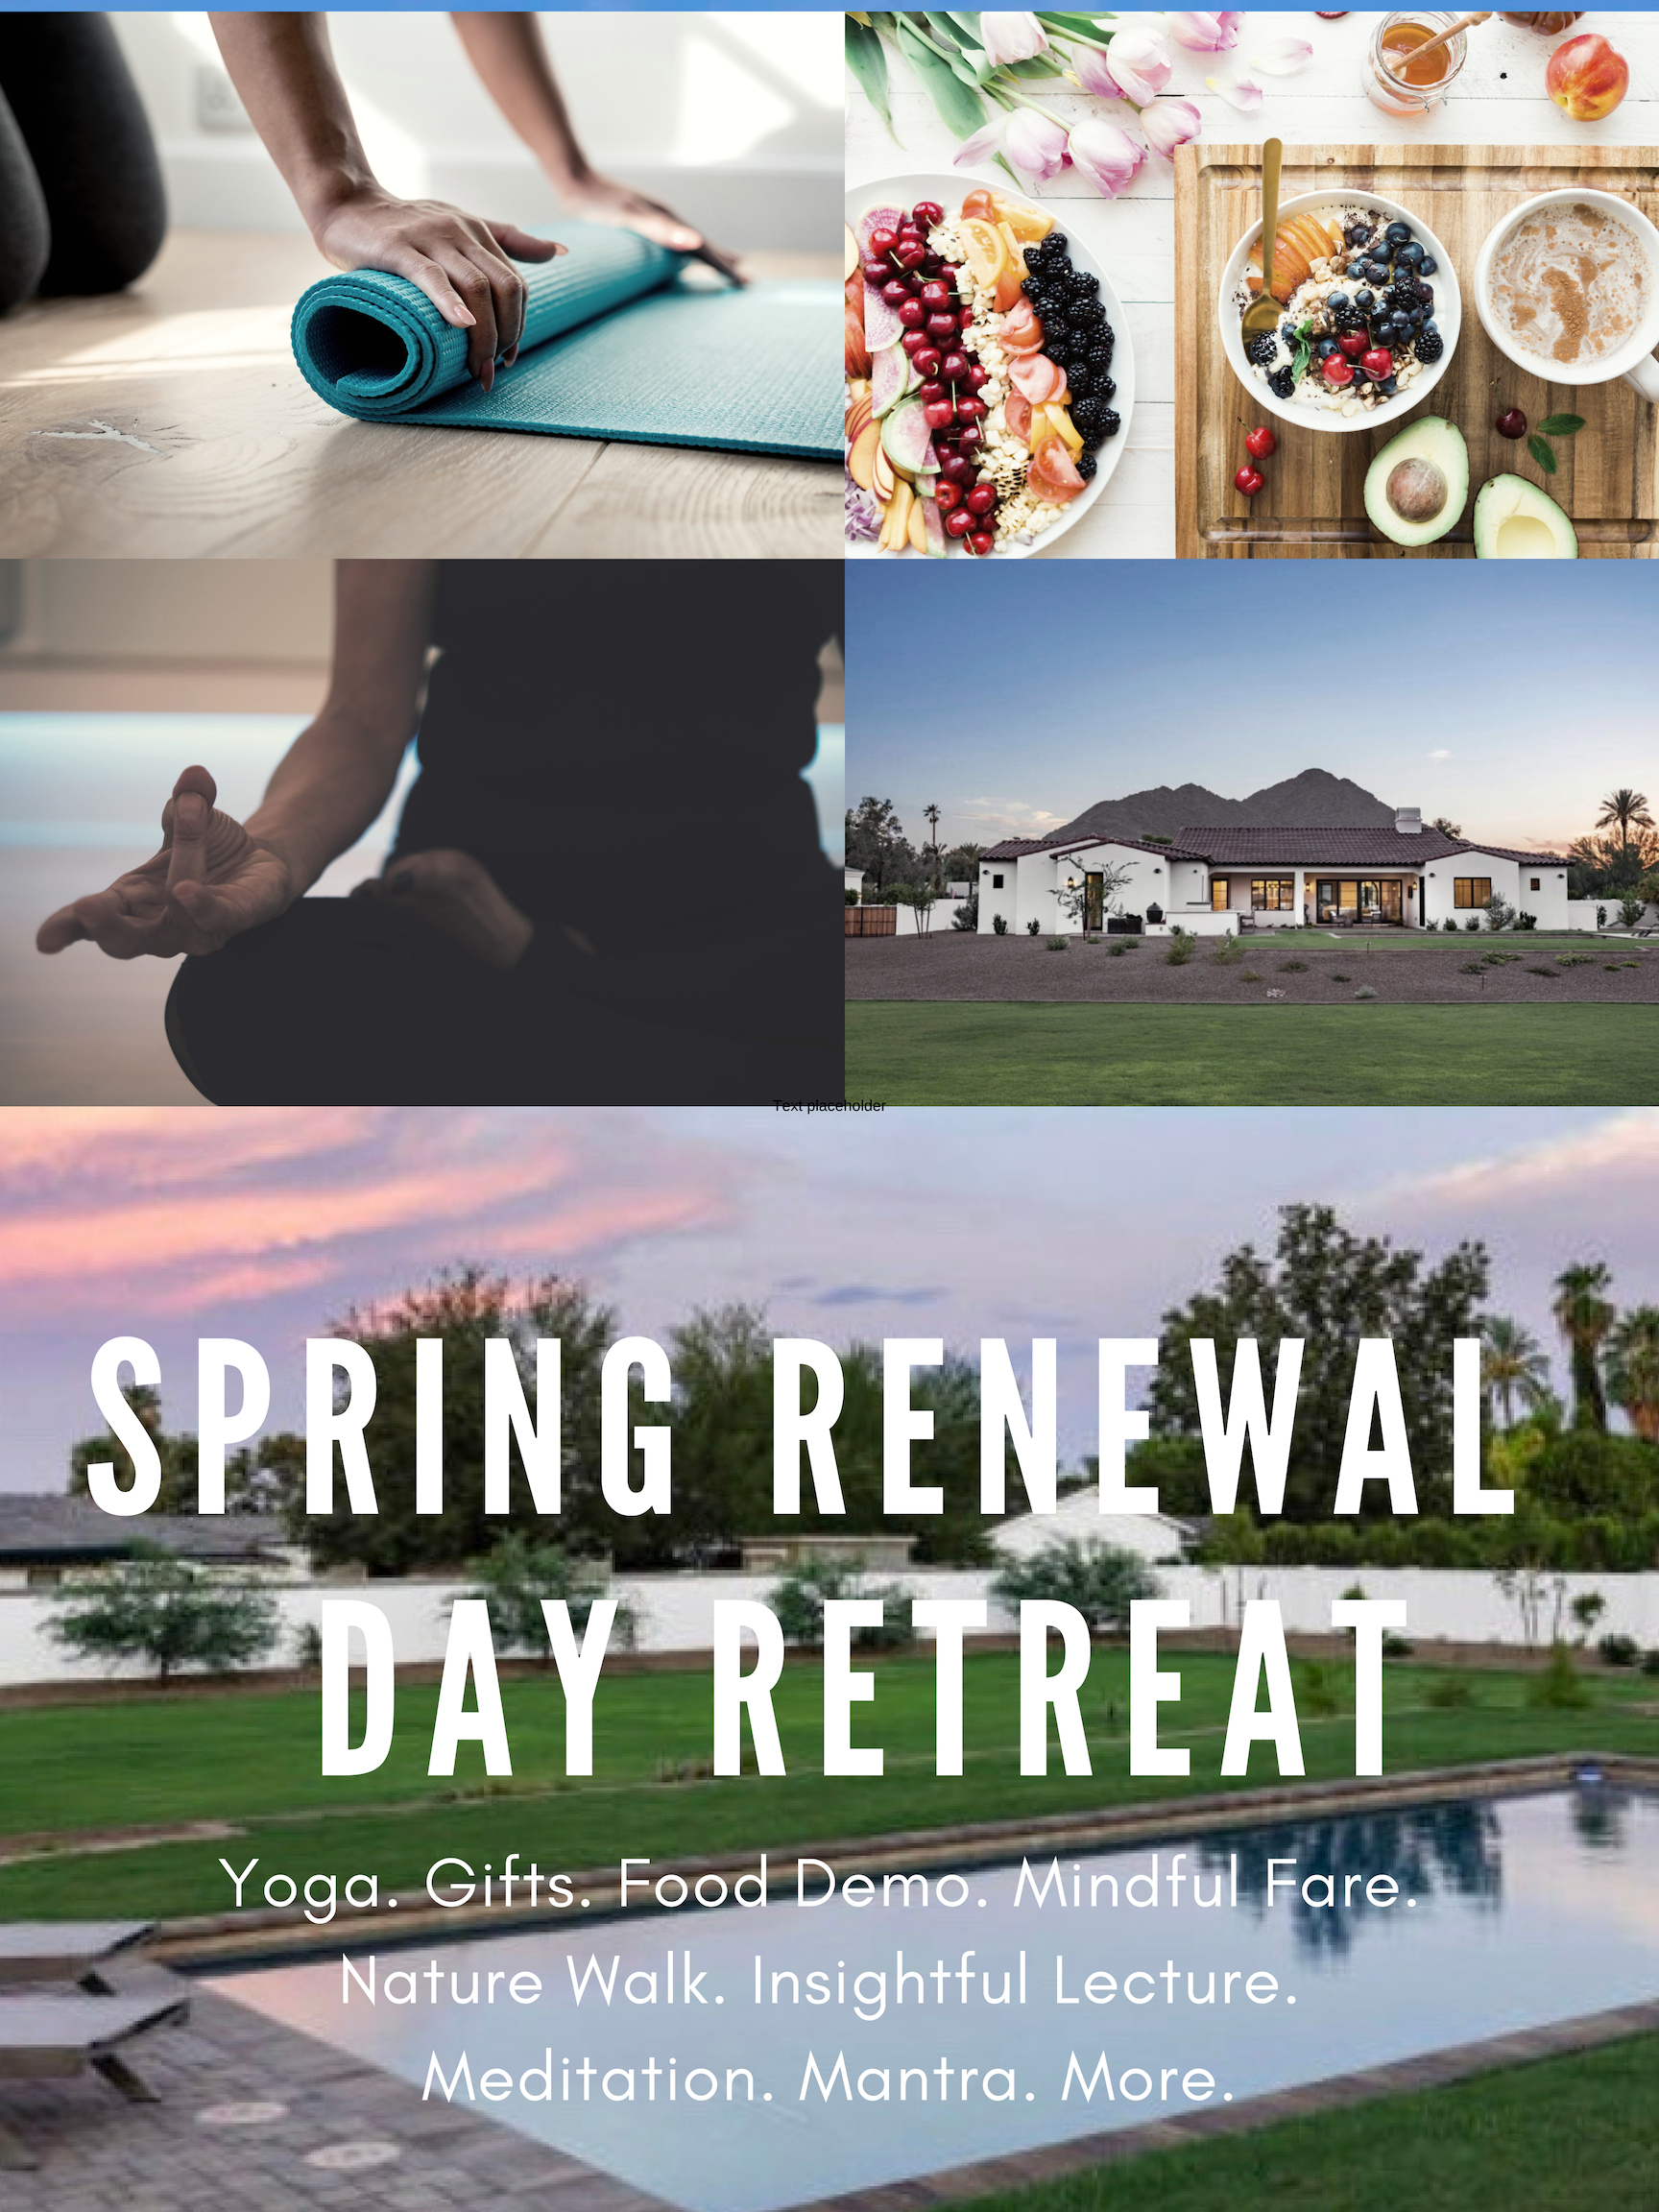 March 29th. Paradise Valley, Arizona. Exclusive. Private. Personalized. Rejuvenating.